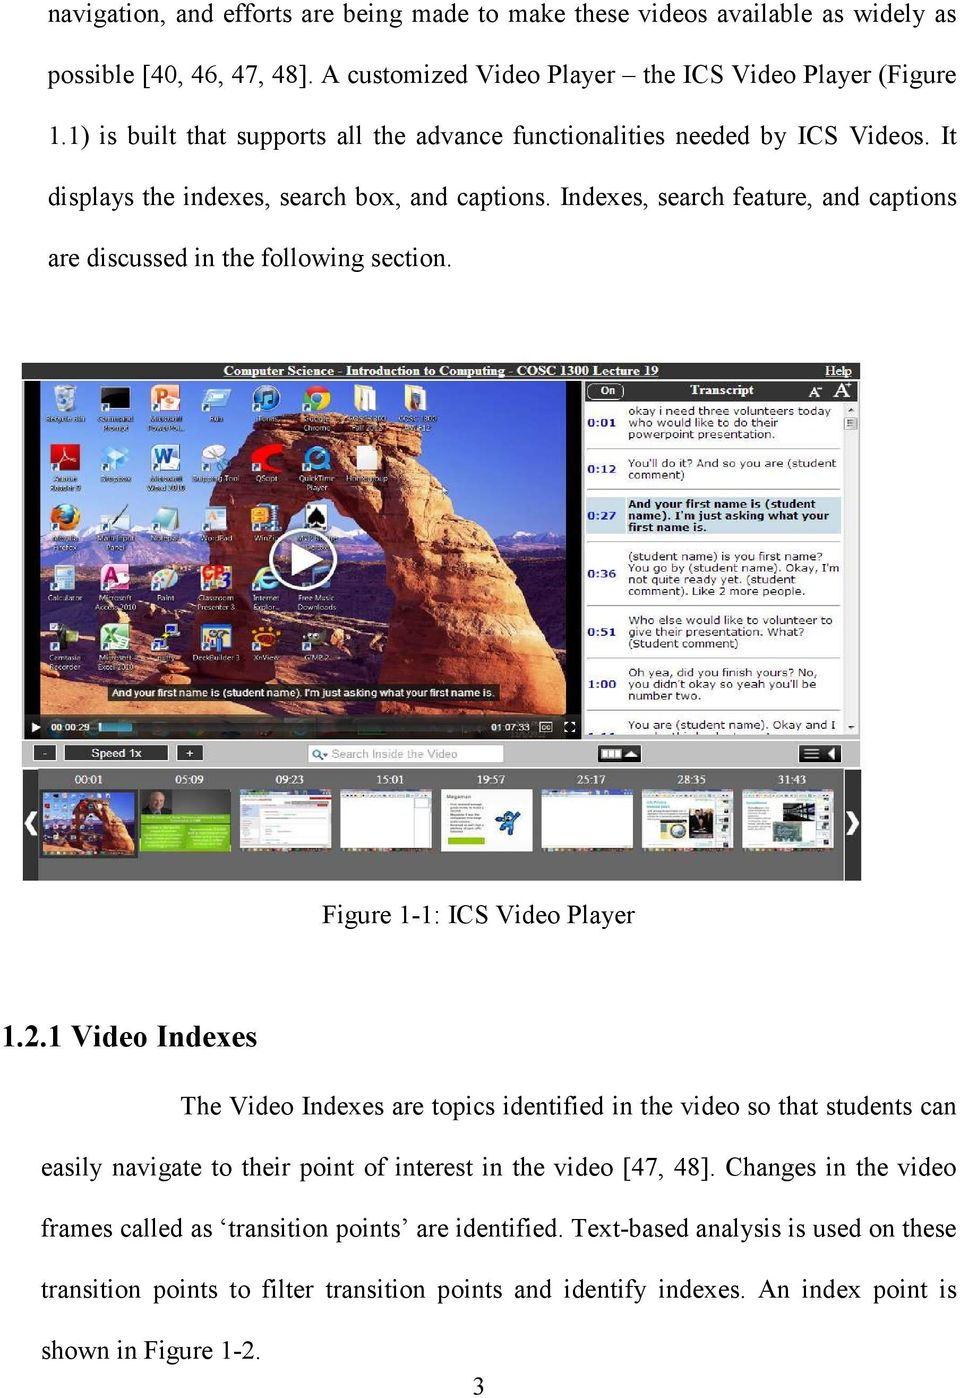 CAPTIONING FOR CLASSROOM LECTURE VIDEOS - PDF